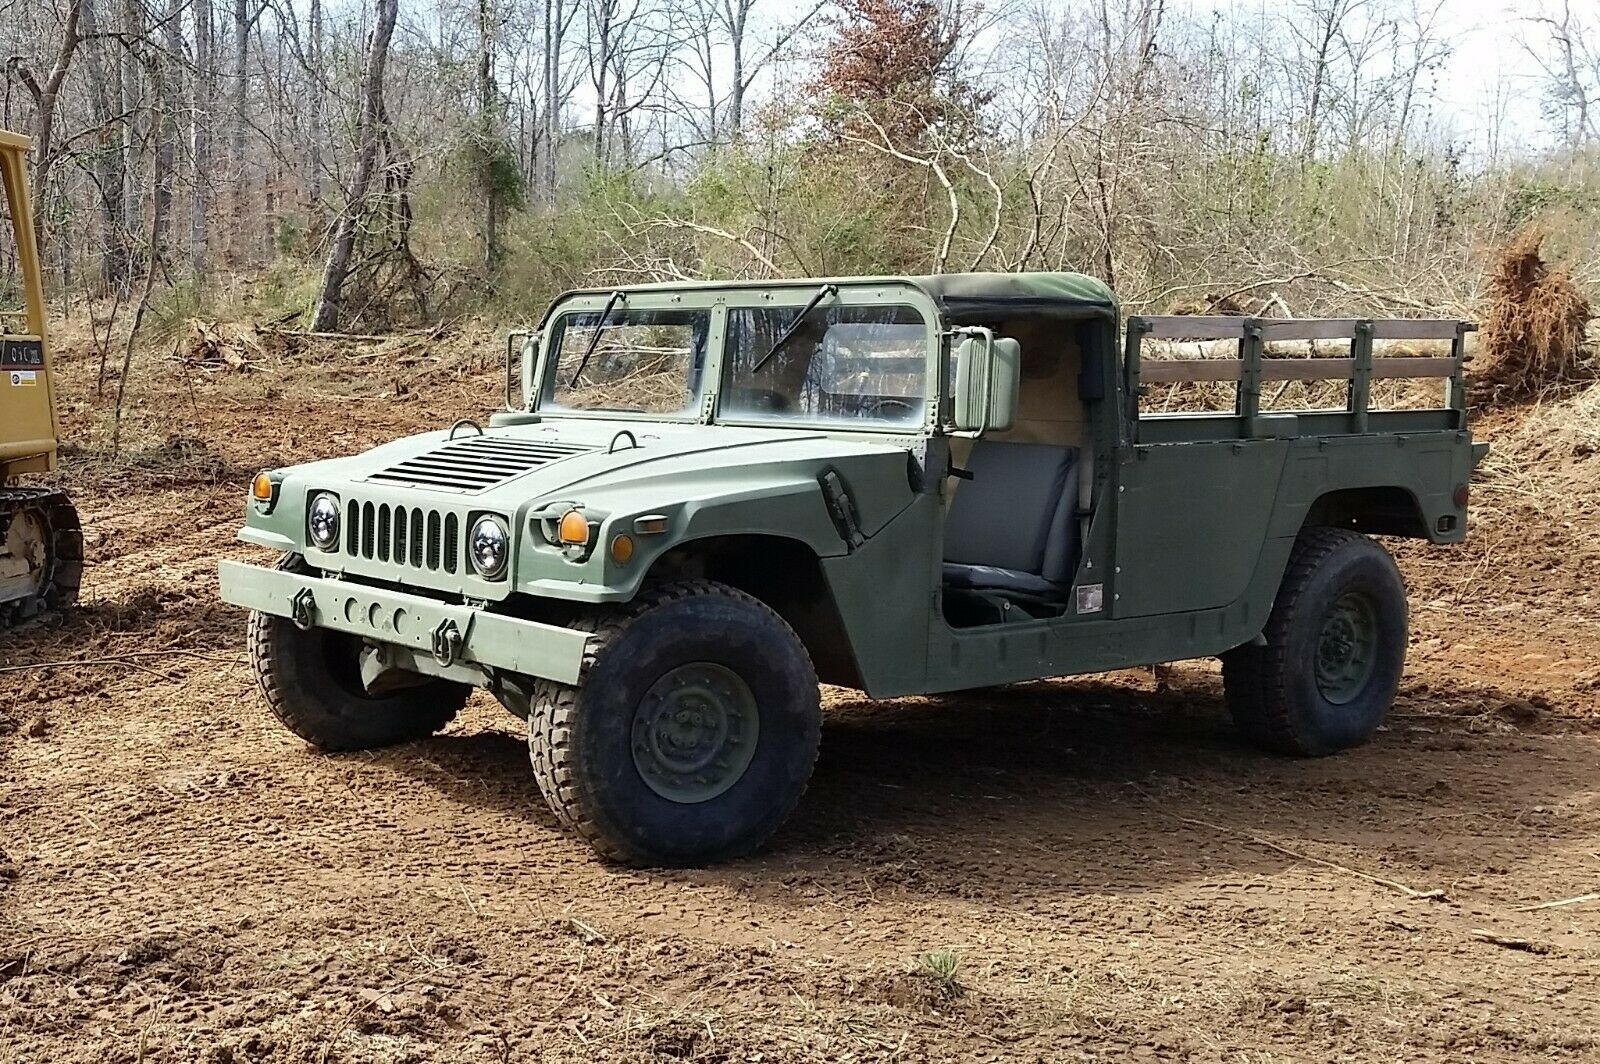 excellent shape 1987 AM General Hummer H1 military